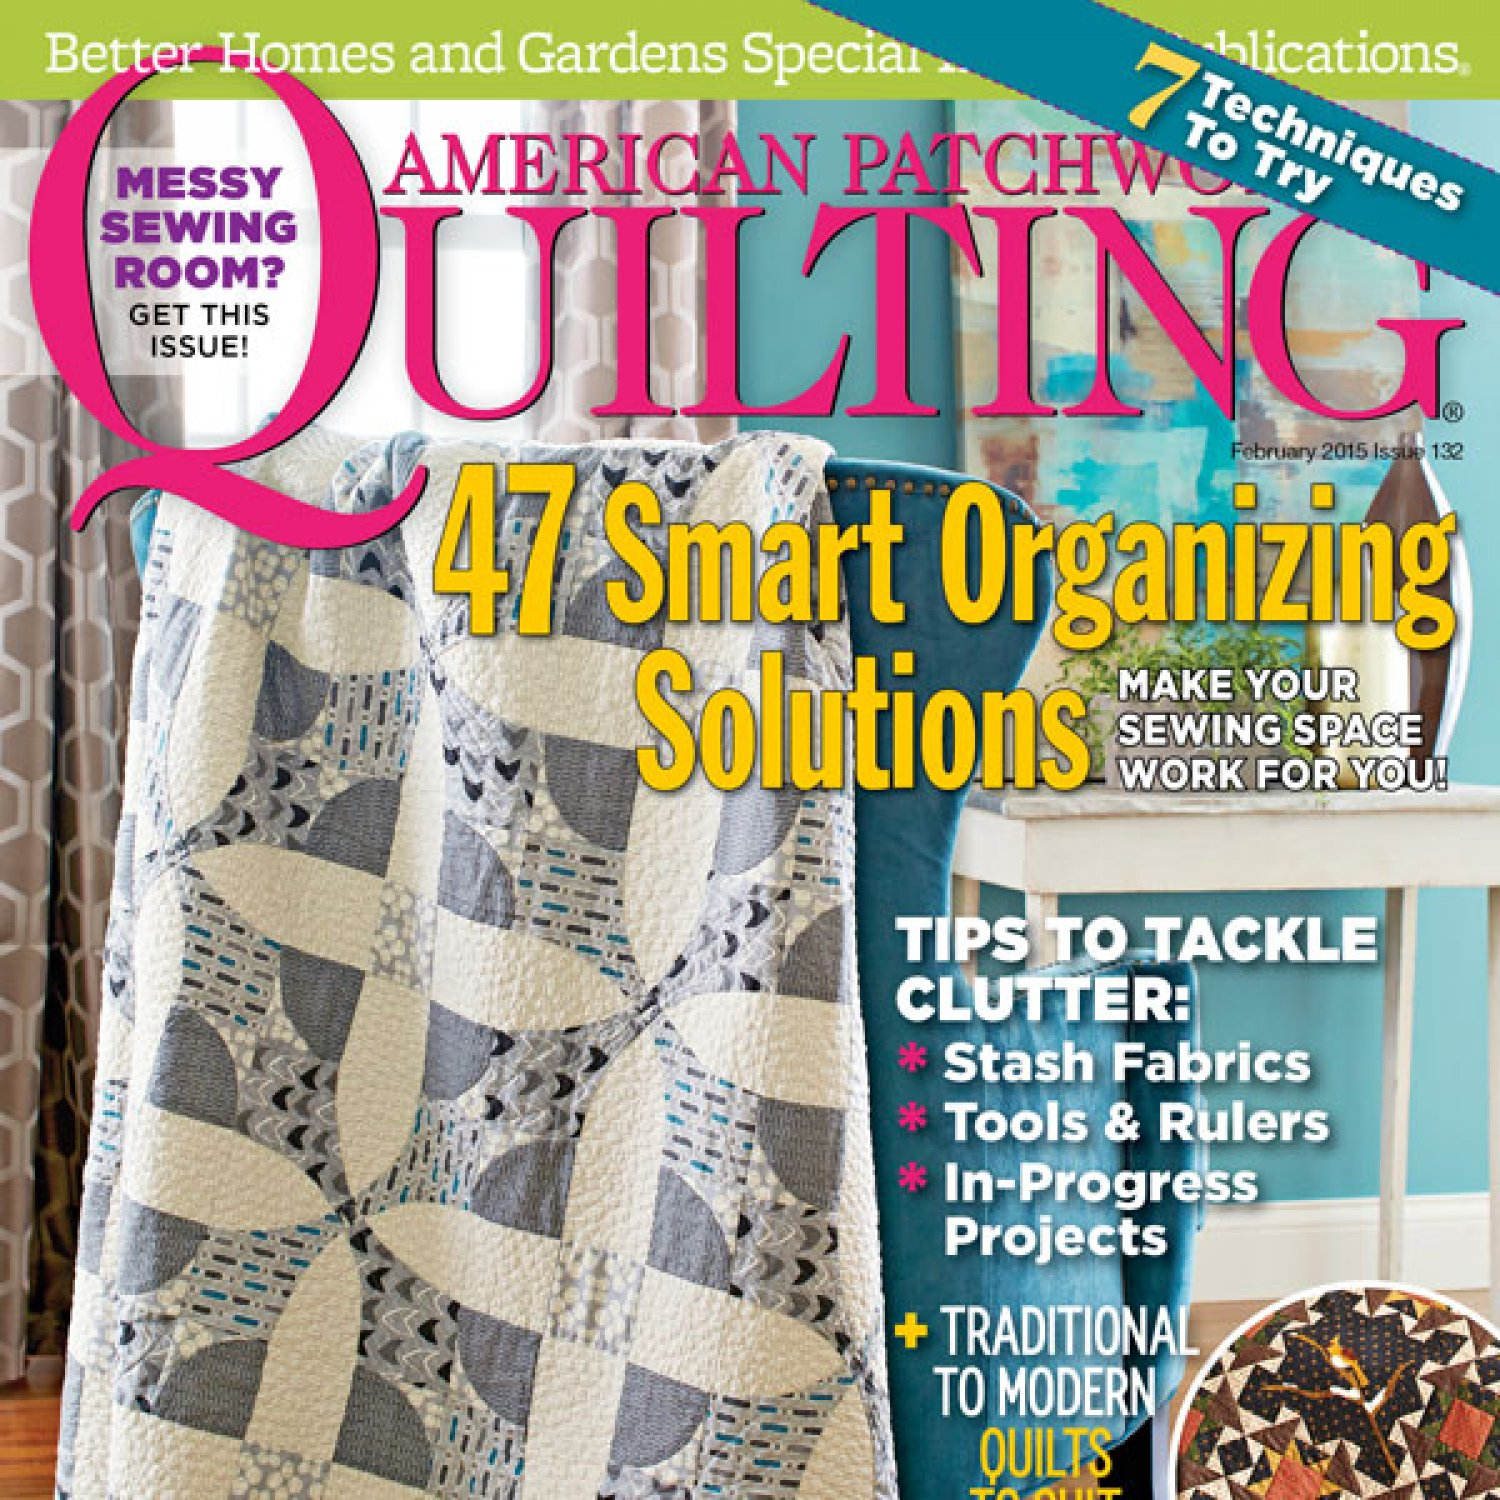 patchwork quilting american feb and web quilt edition